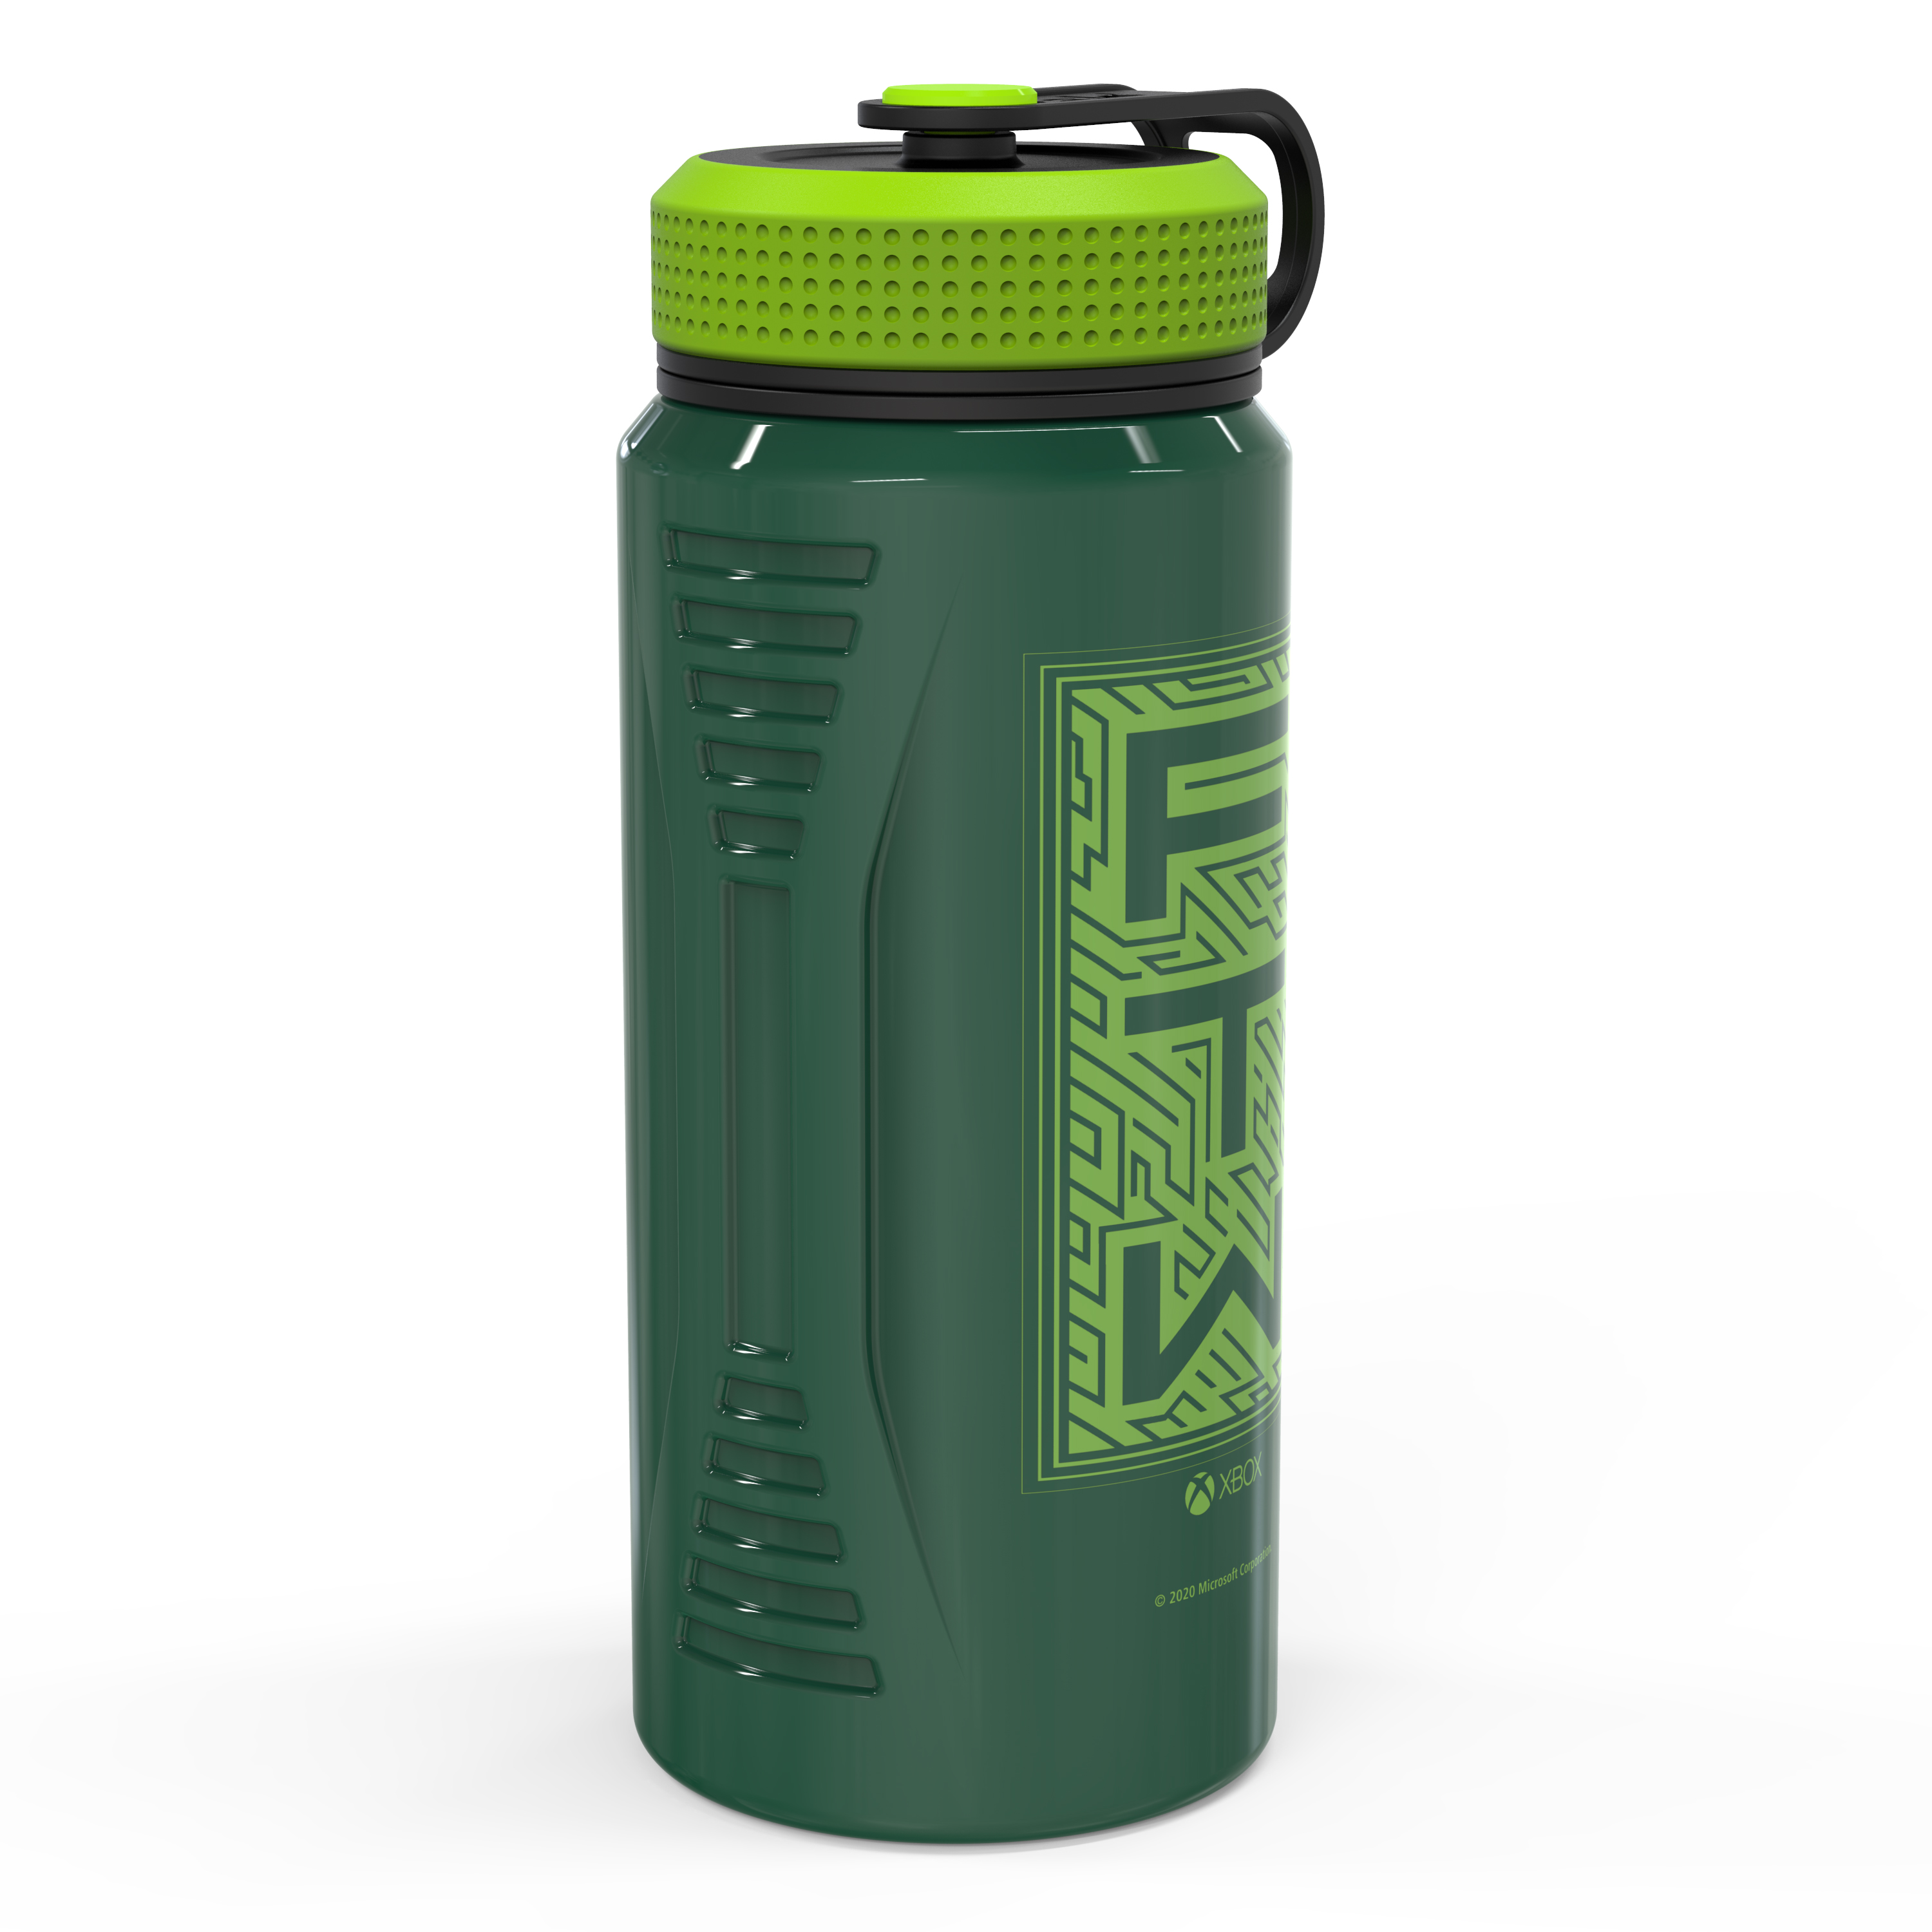 Xbox 24 ounce Stainless Steel Insulated Water Bottle, For the Win slideshow image 3